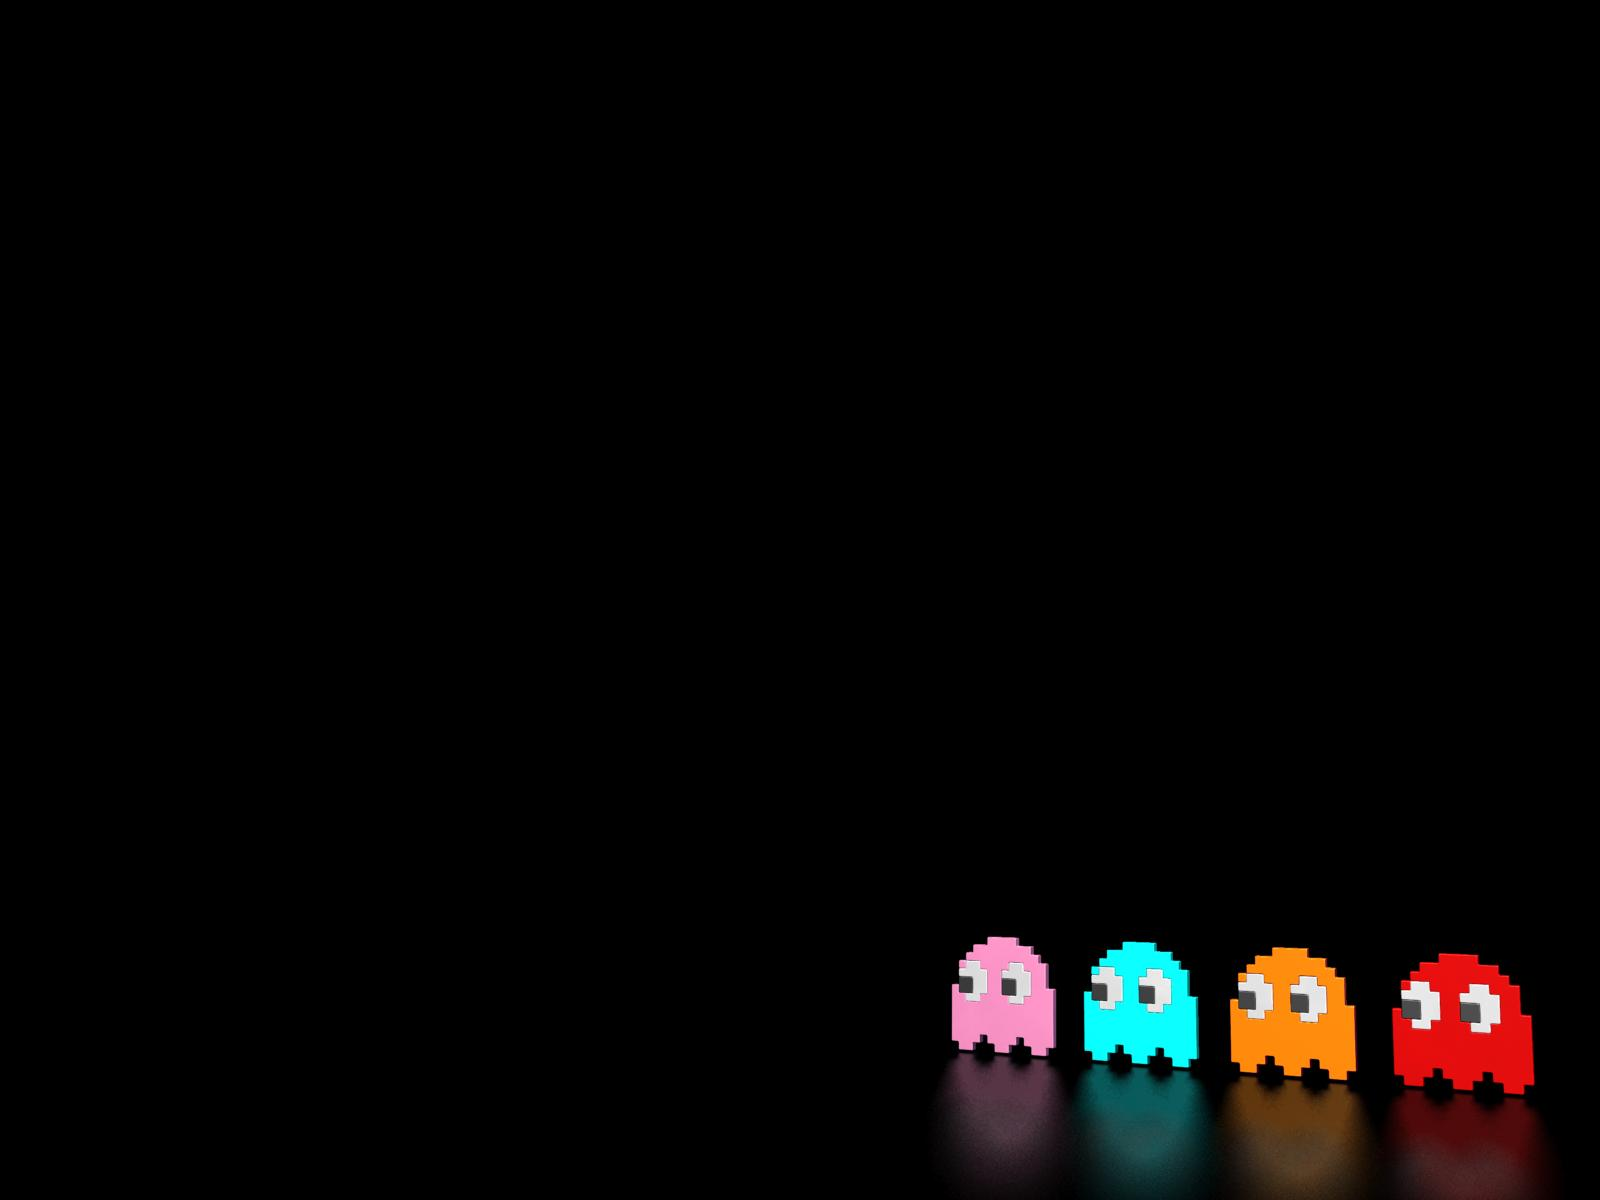 Great Wallpaper Movie Minimal - Little-Pac-Man-Monsters-Minimal-HD-Wallpaper  Pictures_943261.jpg